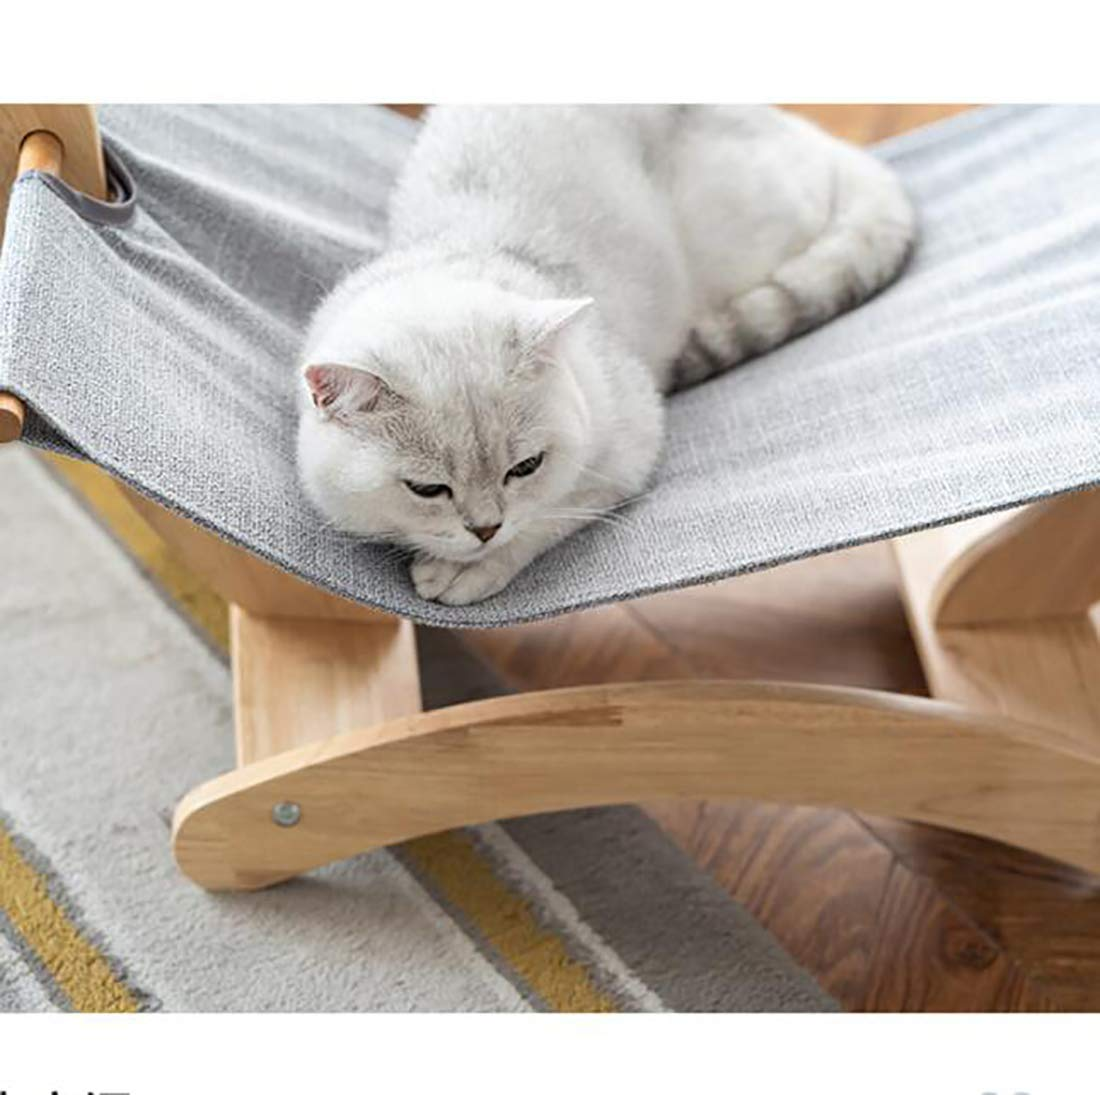 KGAO Cat Litter Wooden Shaker Solid Wood Hammock Shaker Supplies Four Seasons Available Comfortable Baby Cat Puppy Climbing Pet Mat,Brown by KGAO